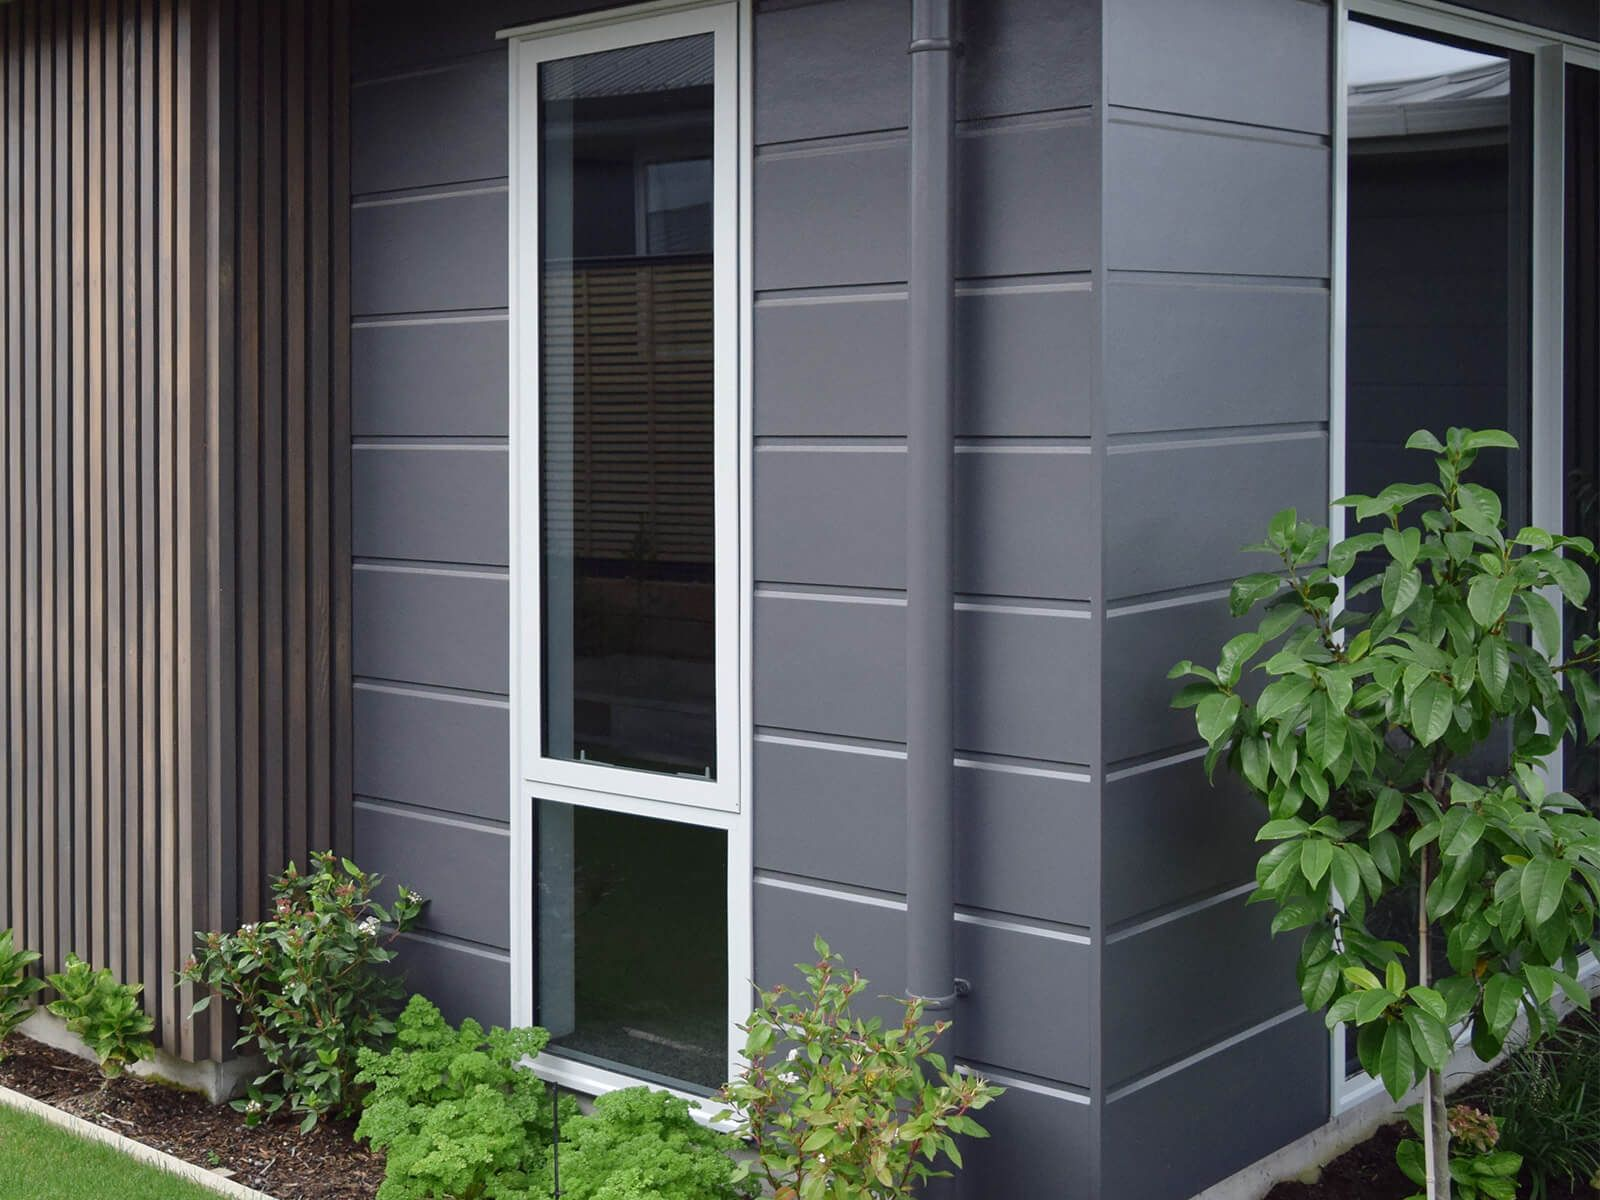 Stria Cladding Scyon Wall Cladding Cladding Interior Cladding House Exterior